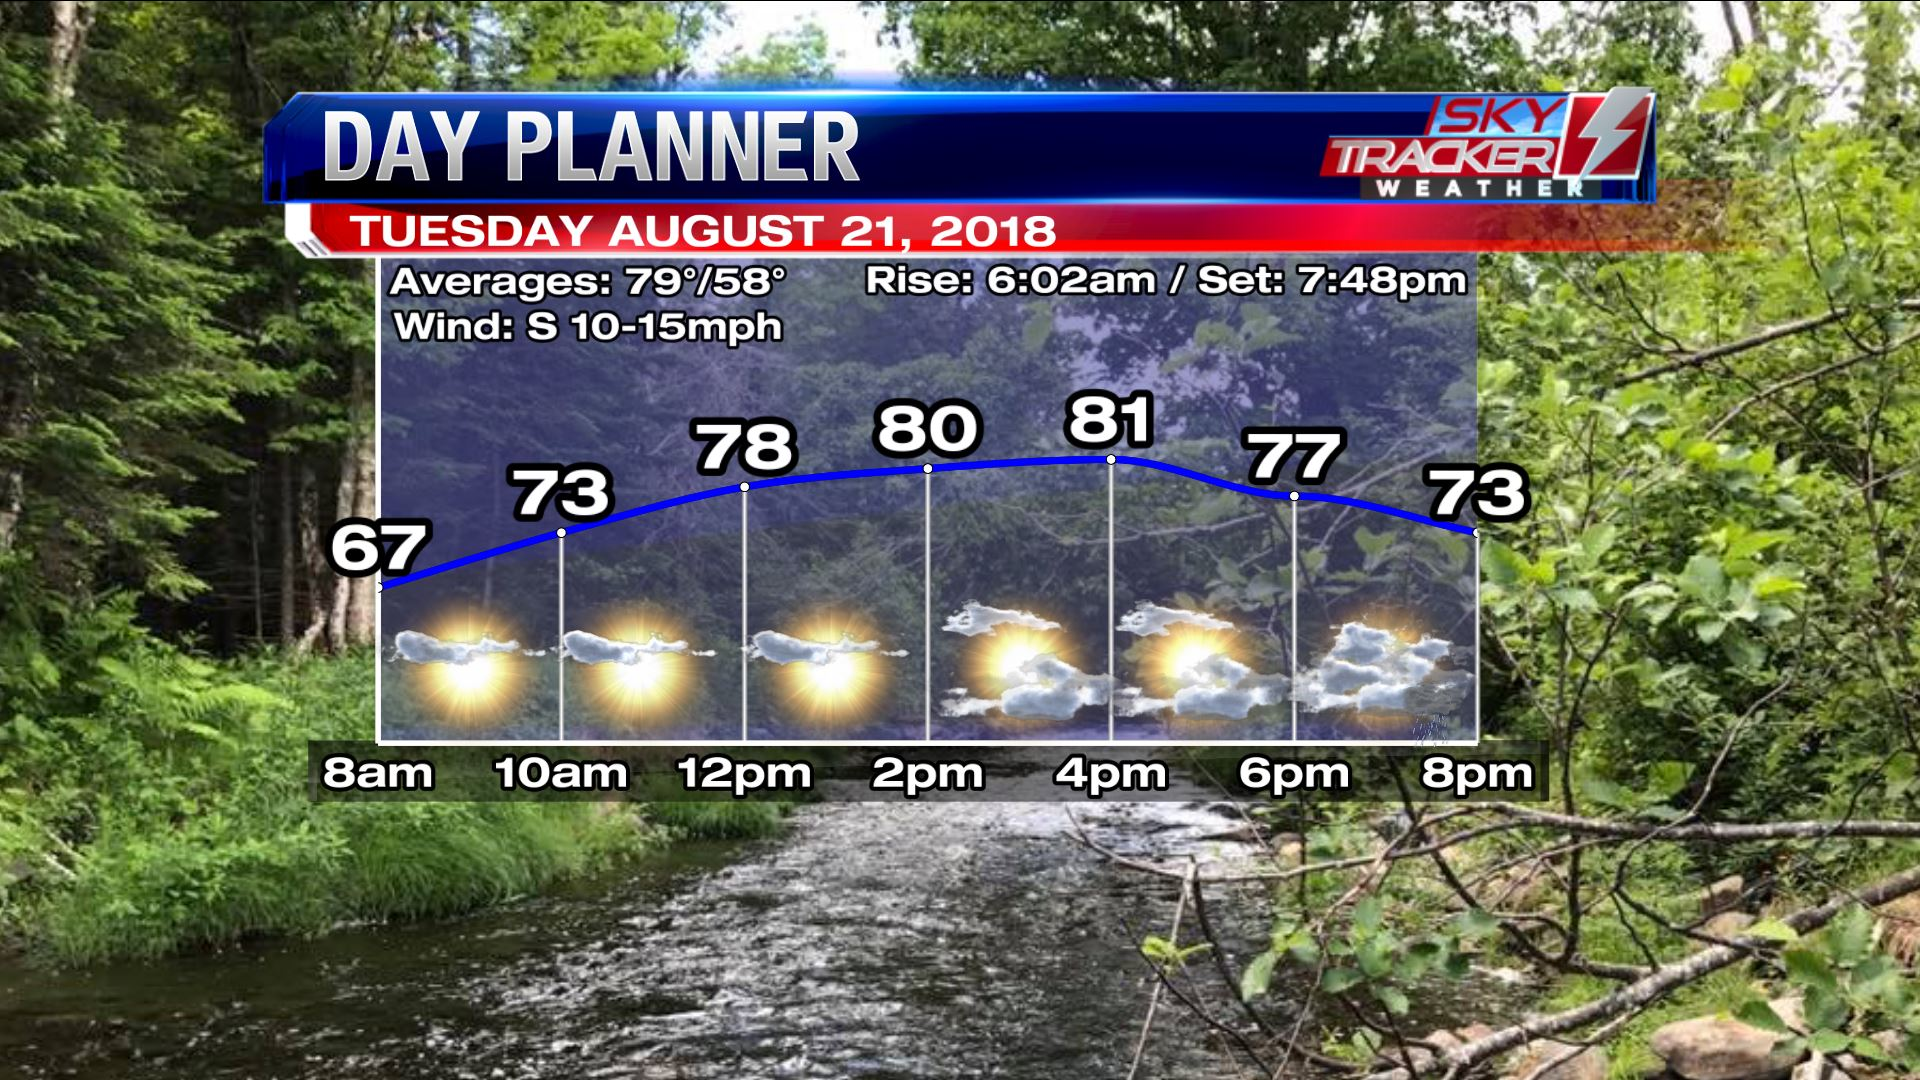 Planner for Tuesday August 21 2018